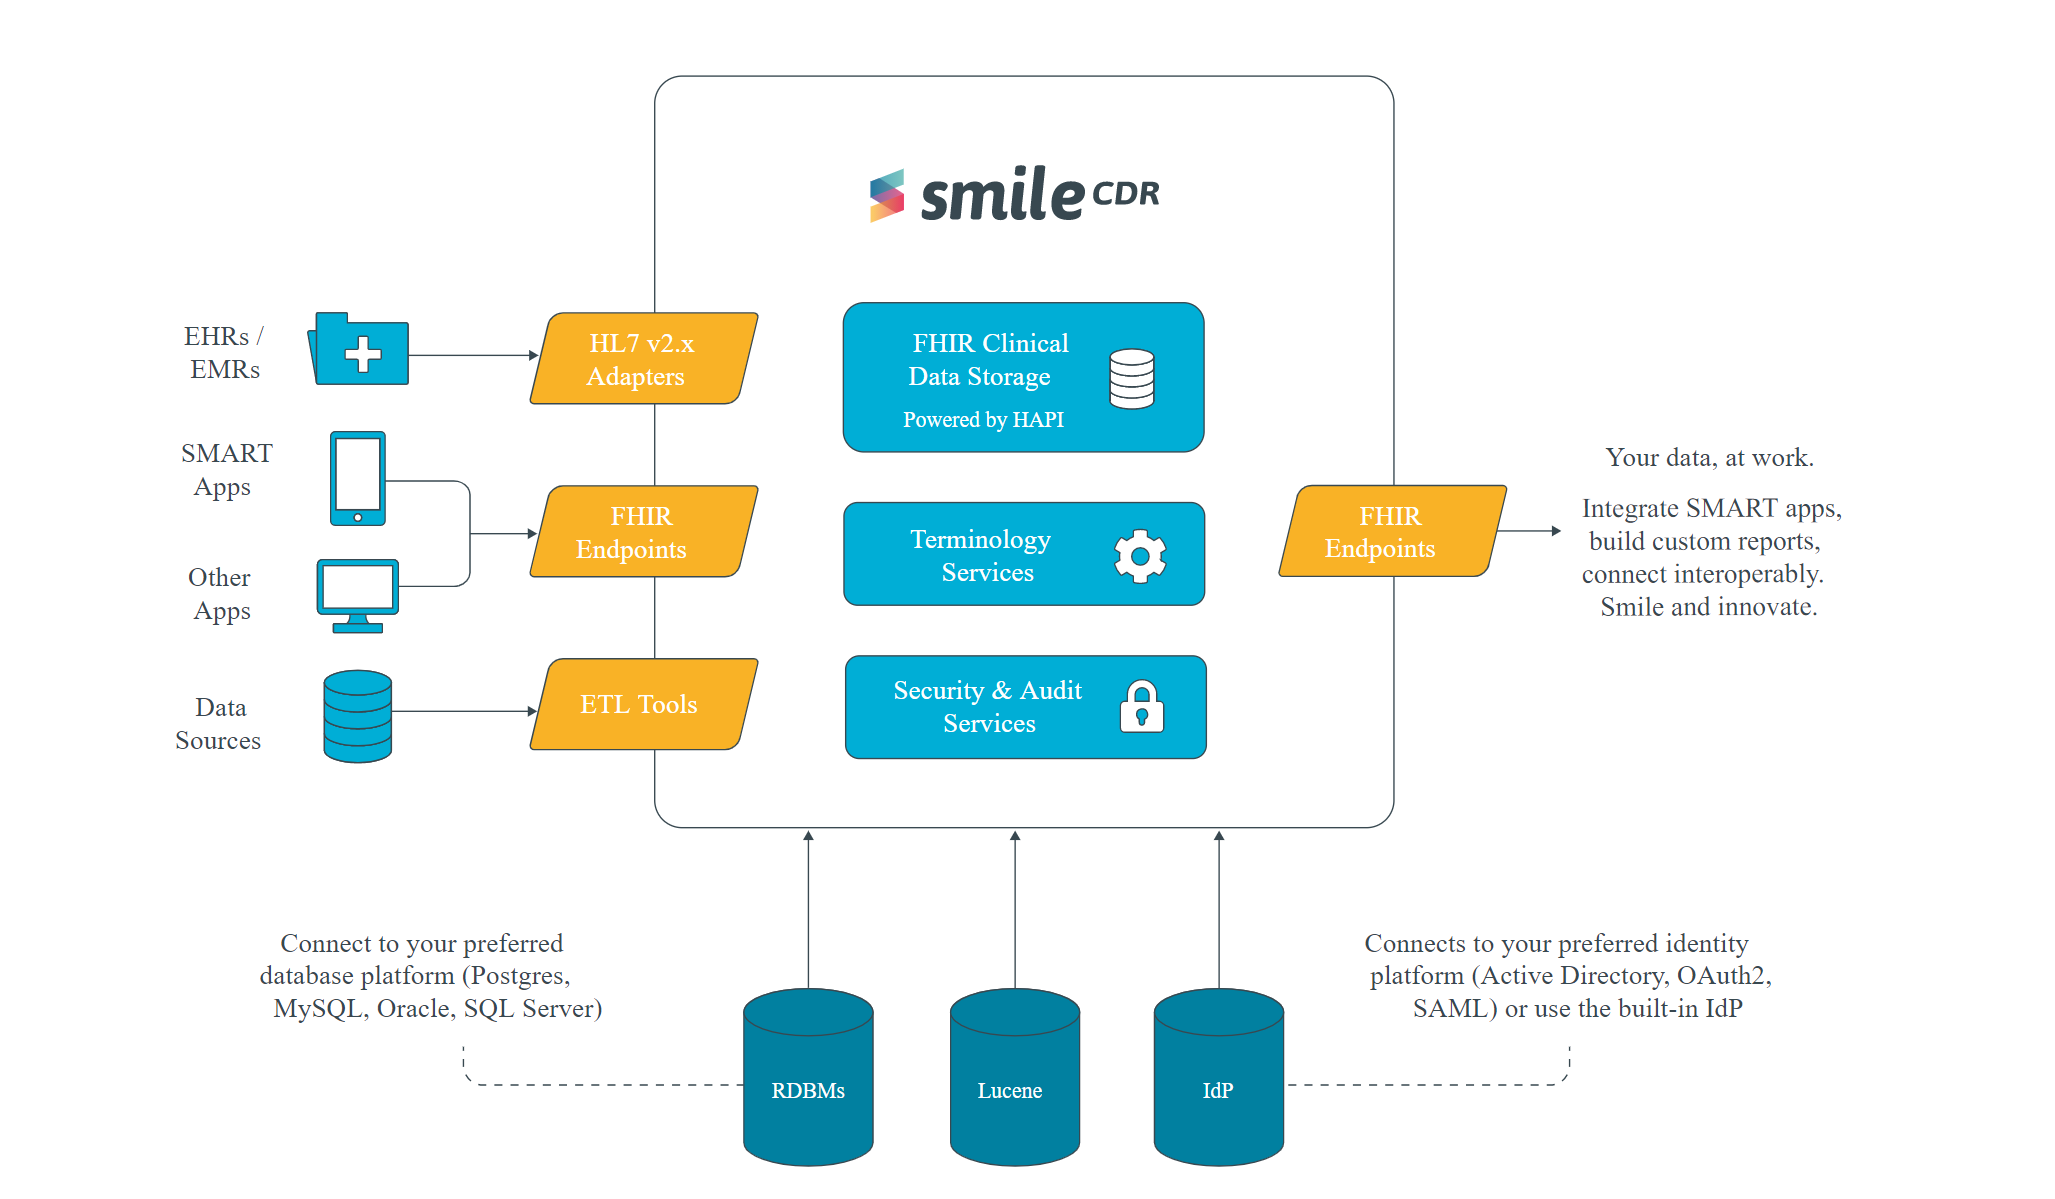 Smile CDR Raises $ 20 Million to Expand FHIR Powered Data Release Platform for Interoperability